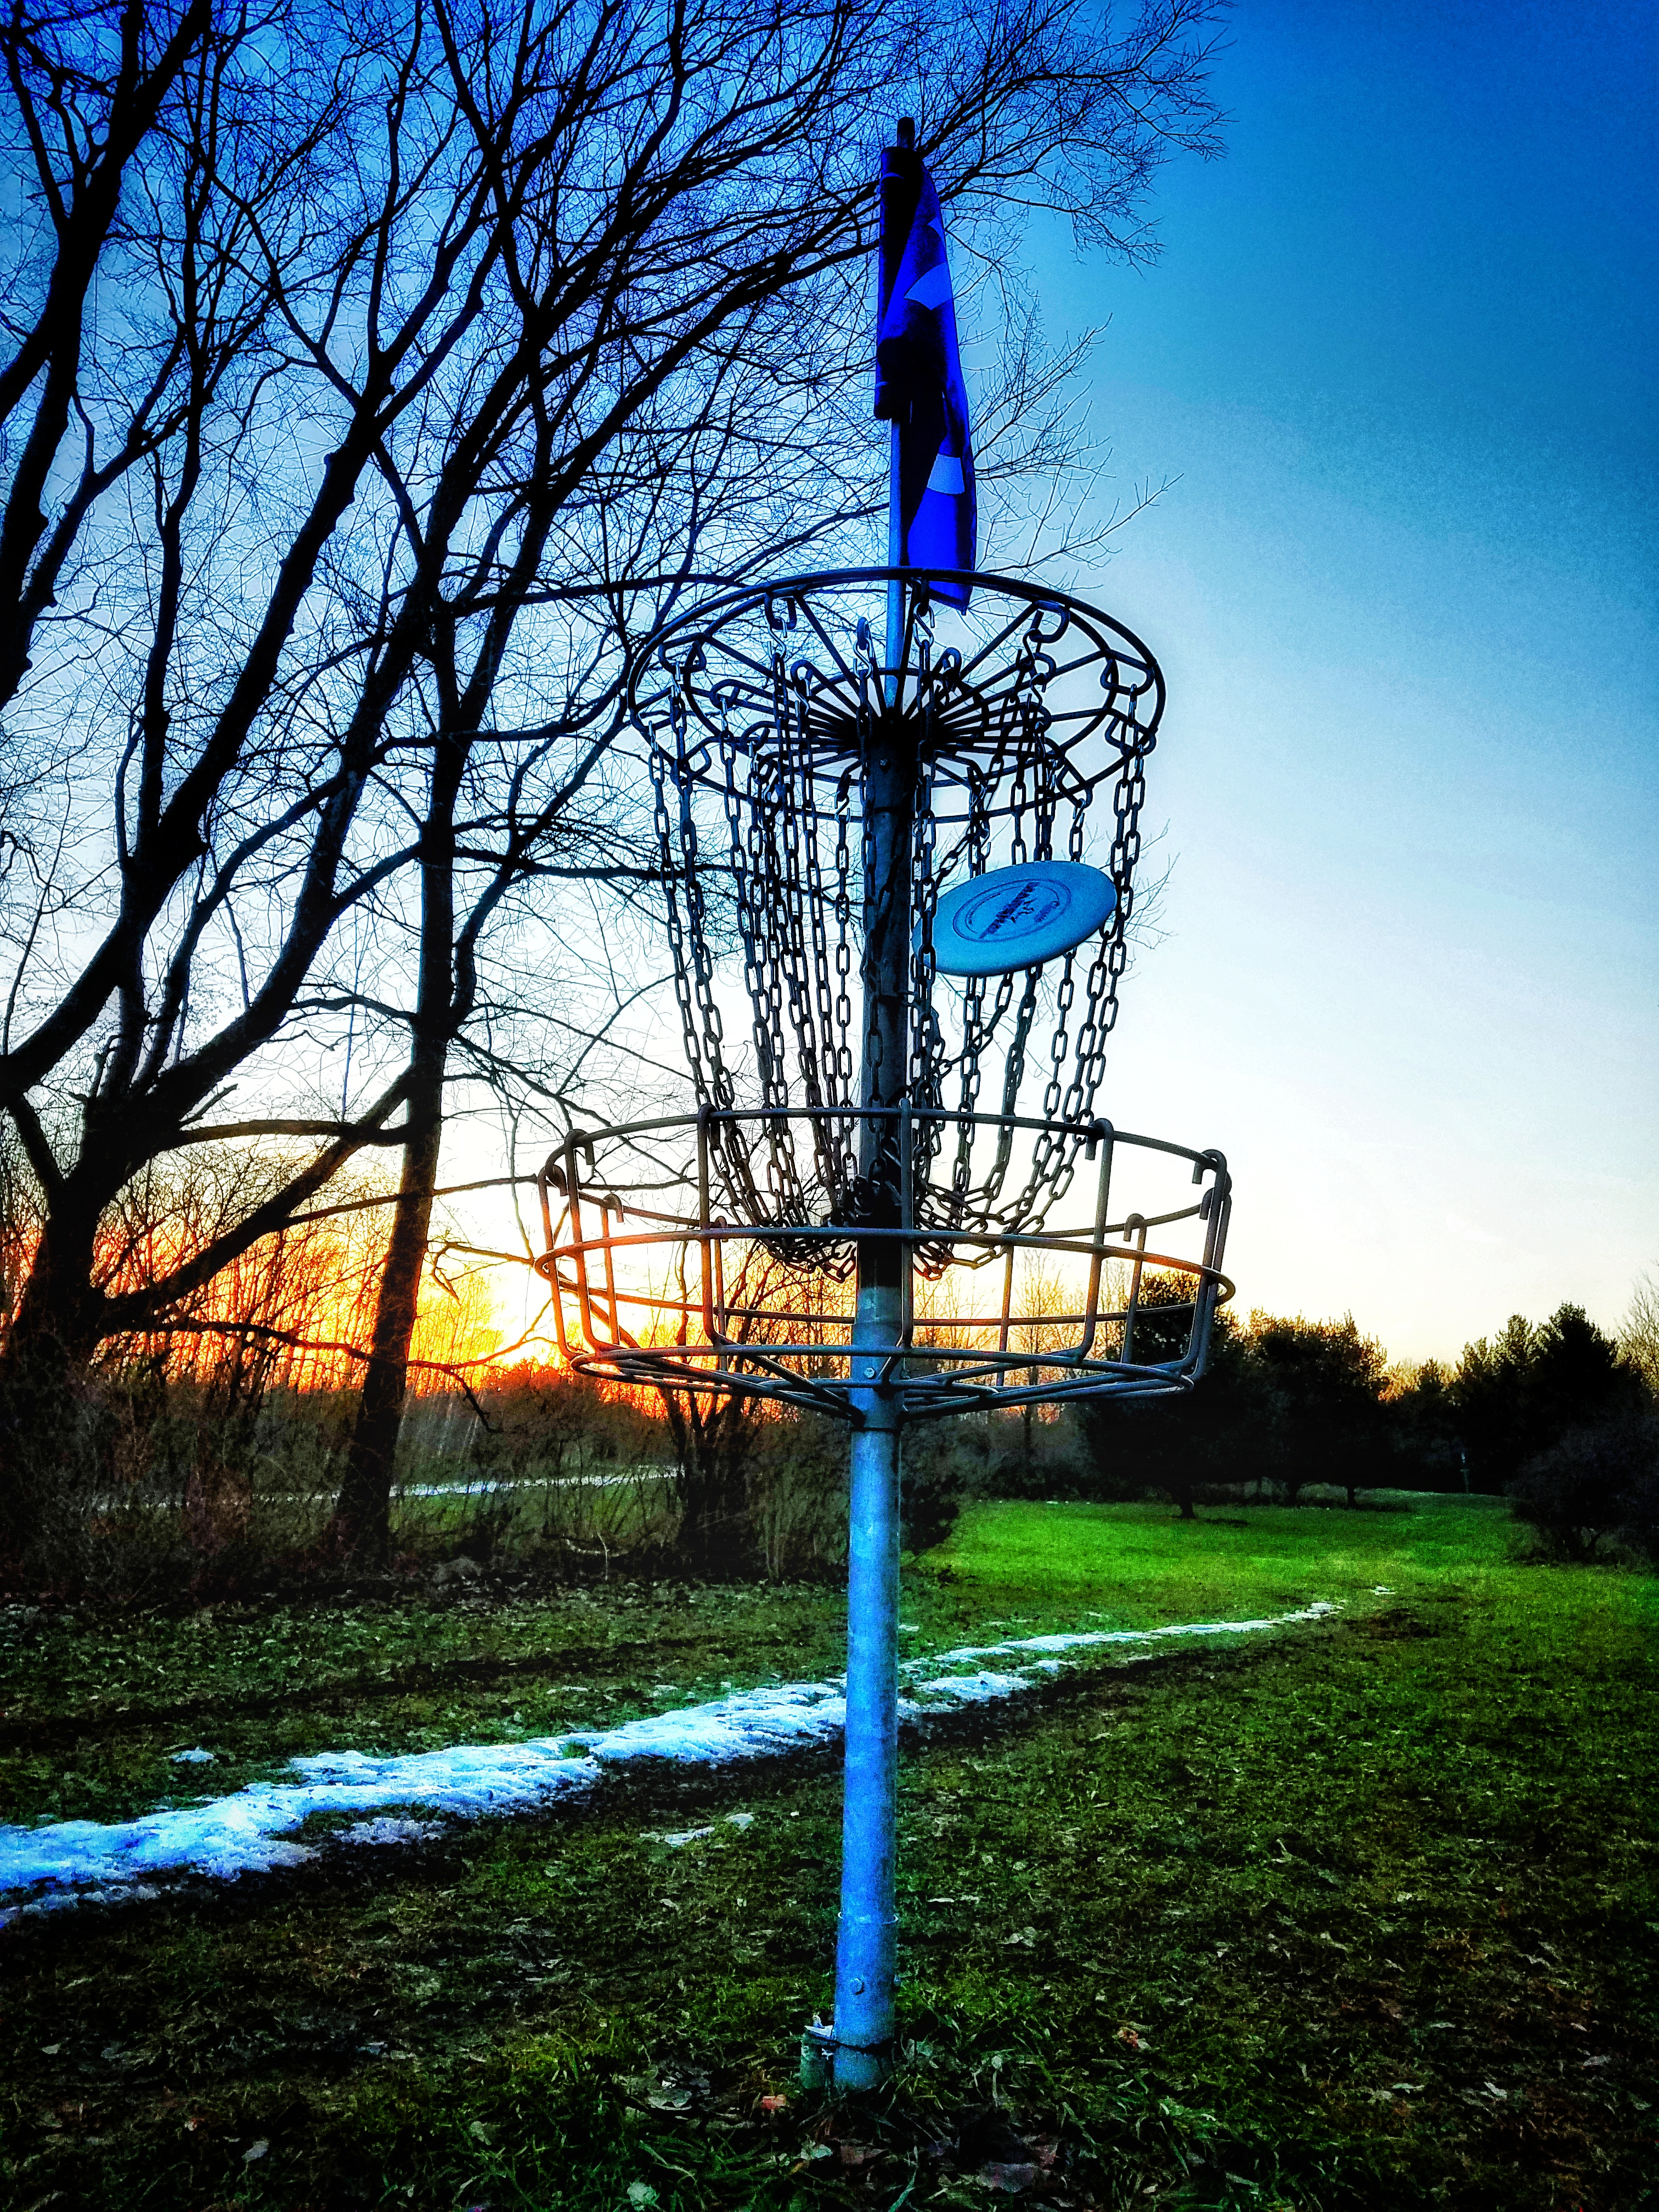 Winter Disc Golf - Discs and Plastic - Disc Golf Puttheads